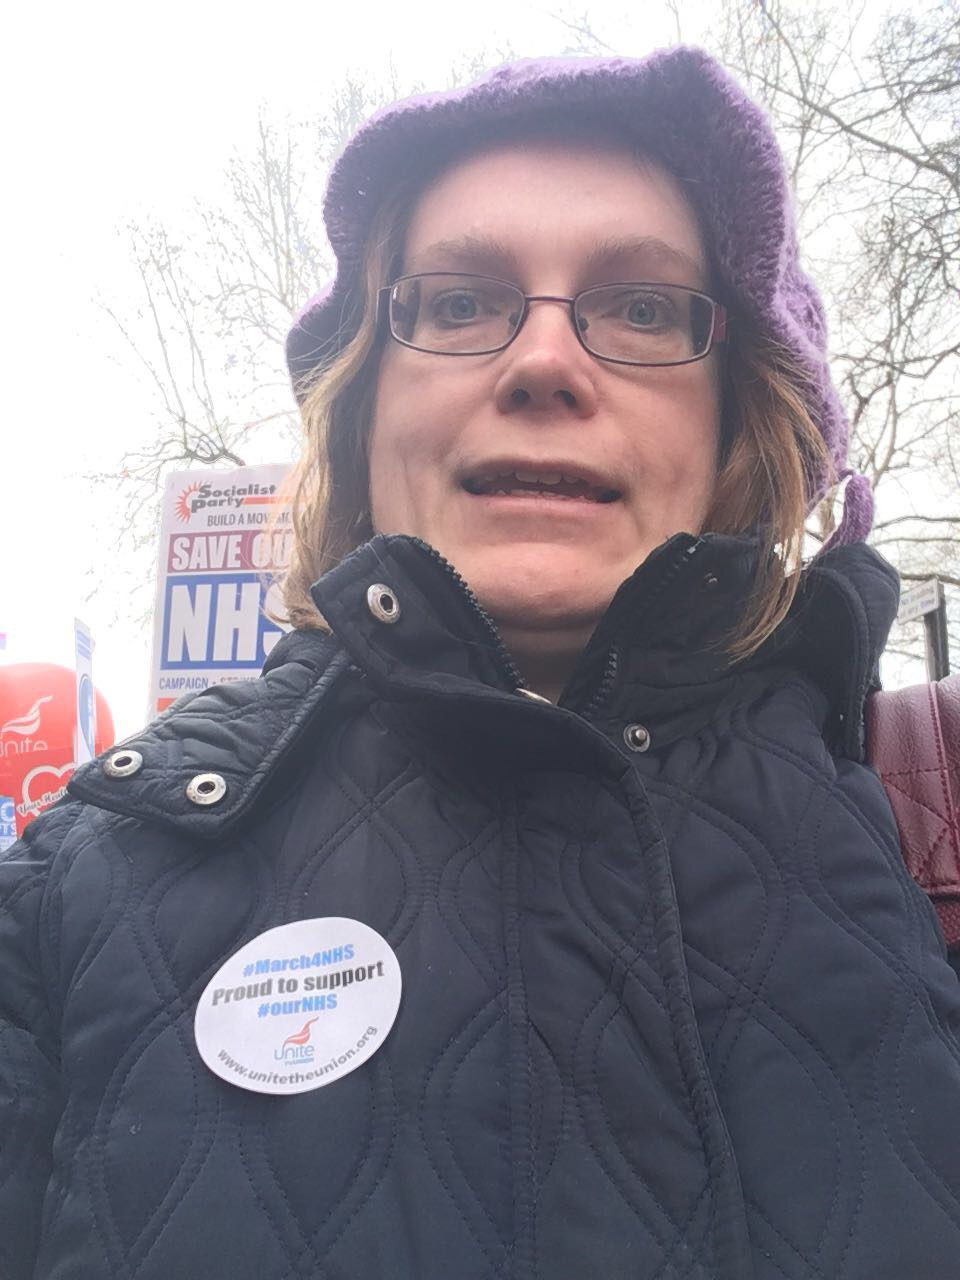 Ruth McCorry; a blonde woman smiling, wearing a Unite the Union NHS sticker